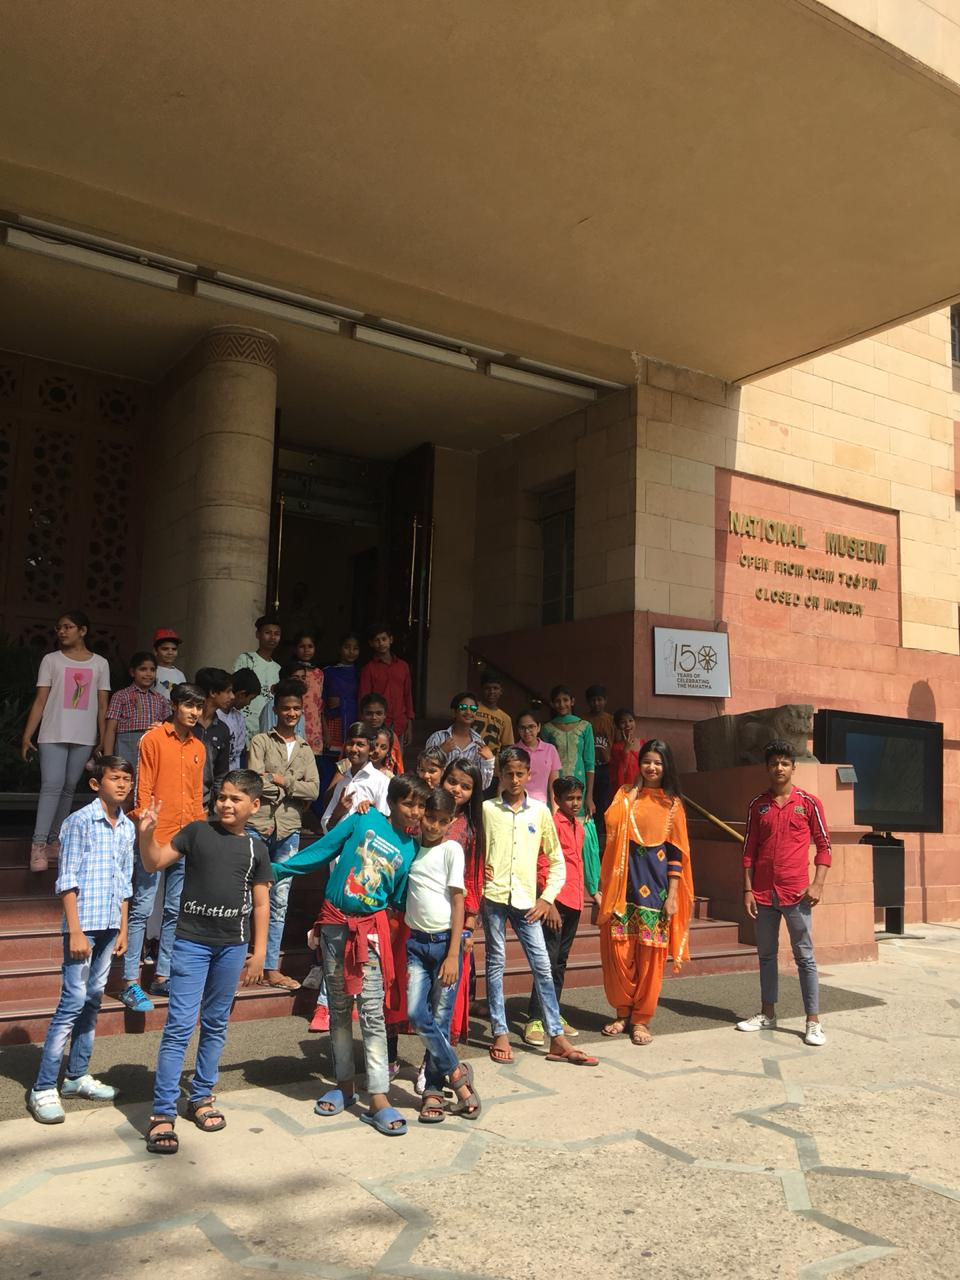 national museum tour Delhi.jpg